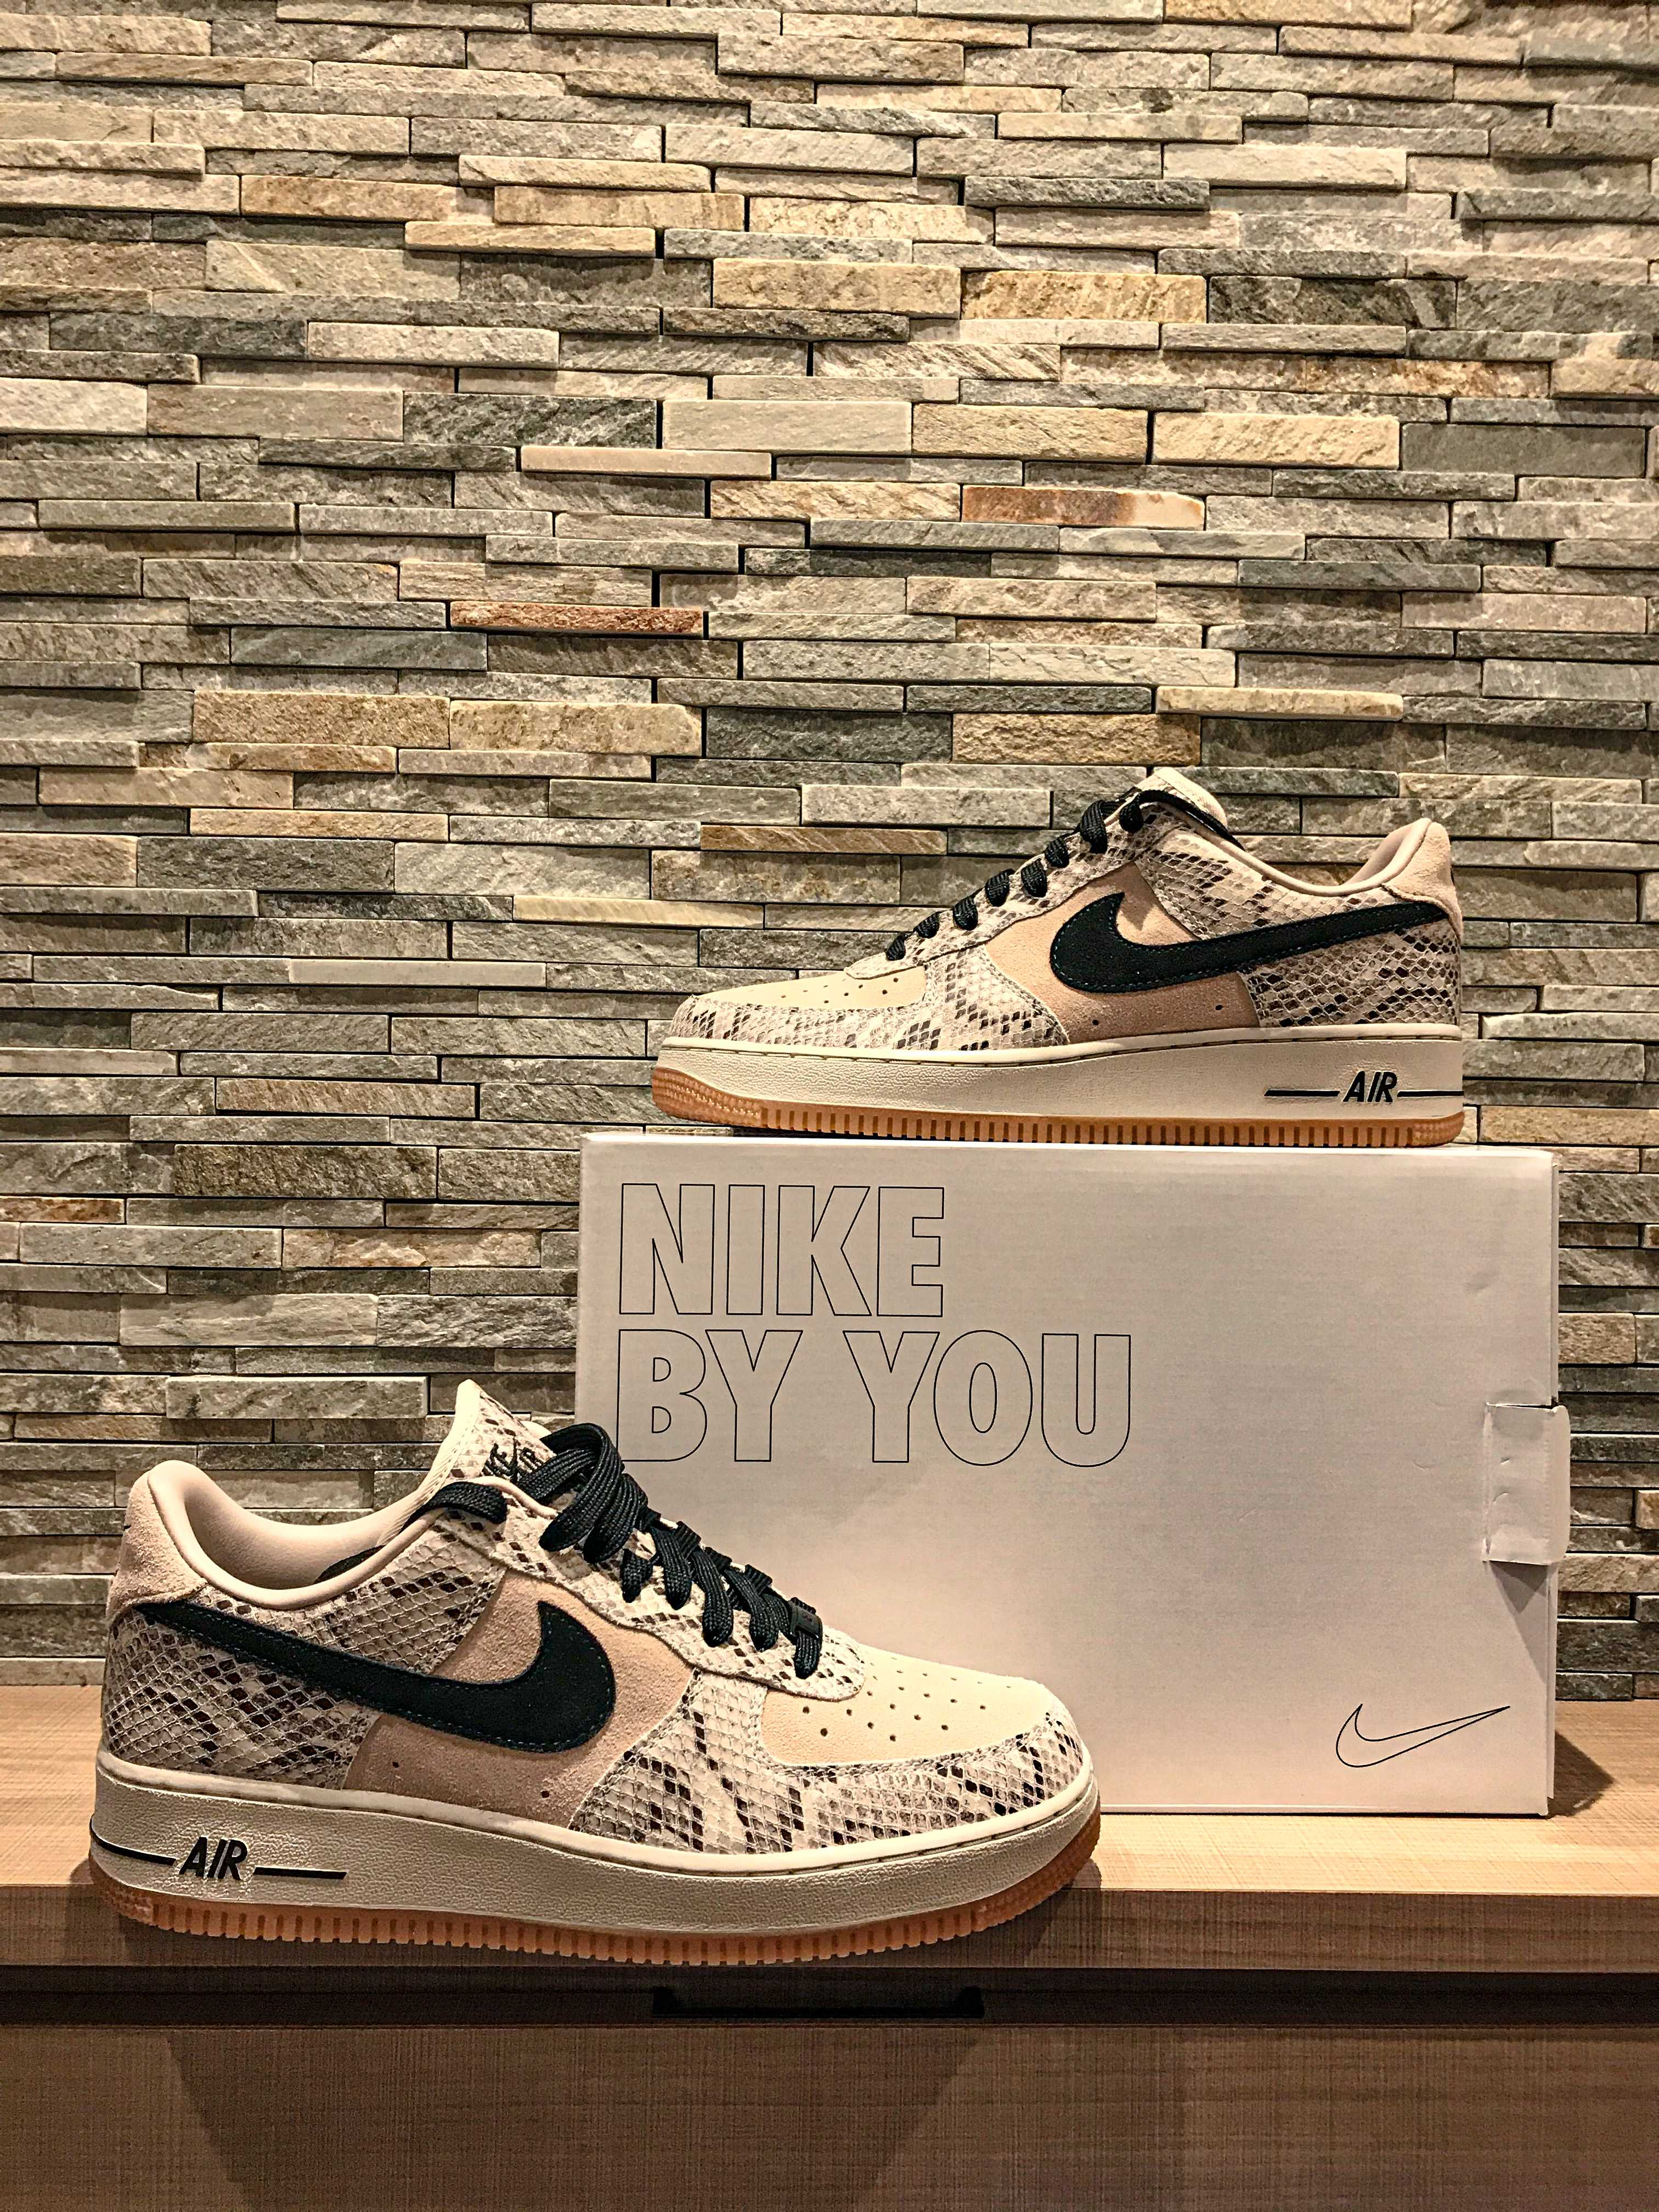 AIR FORCE1 LOW BY YOU